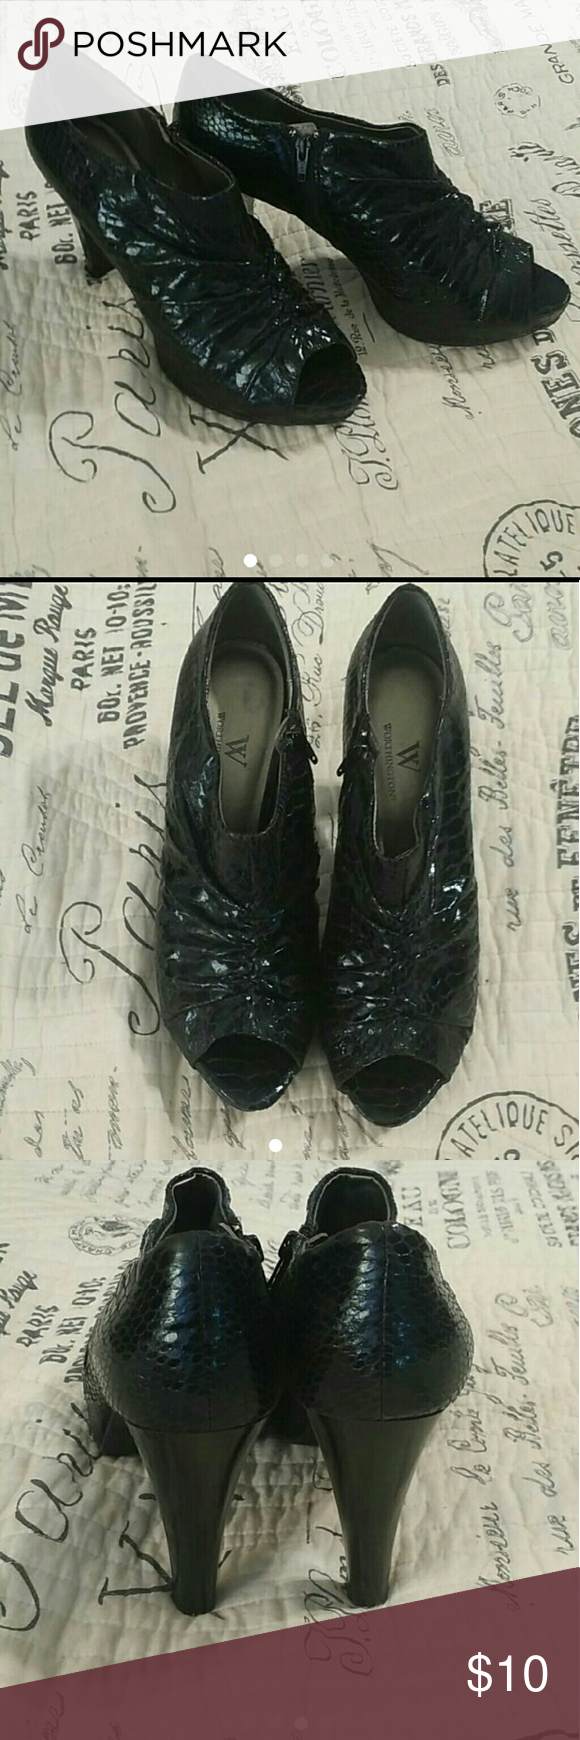 WORTHINGTON BLACK HEELS / BOOTIES SZ 8.5 Worthington Black Heels / Booties size 8.5 (8 1/2). In good condition, have alot of life left in these shoes! Worthington Shoes Ankle Boots & Booties